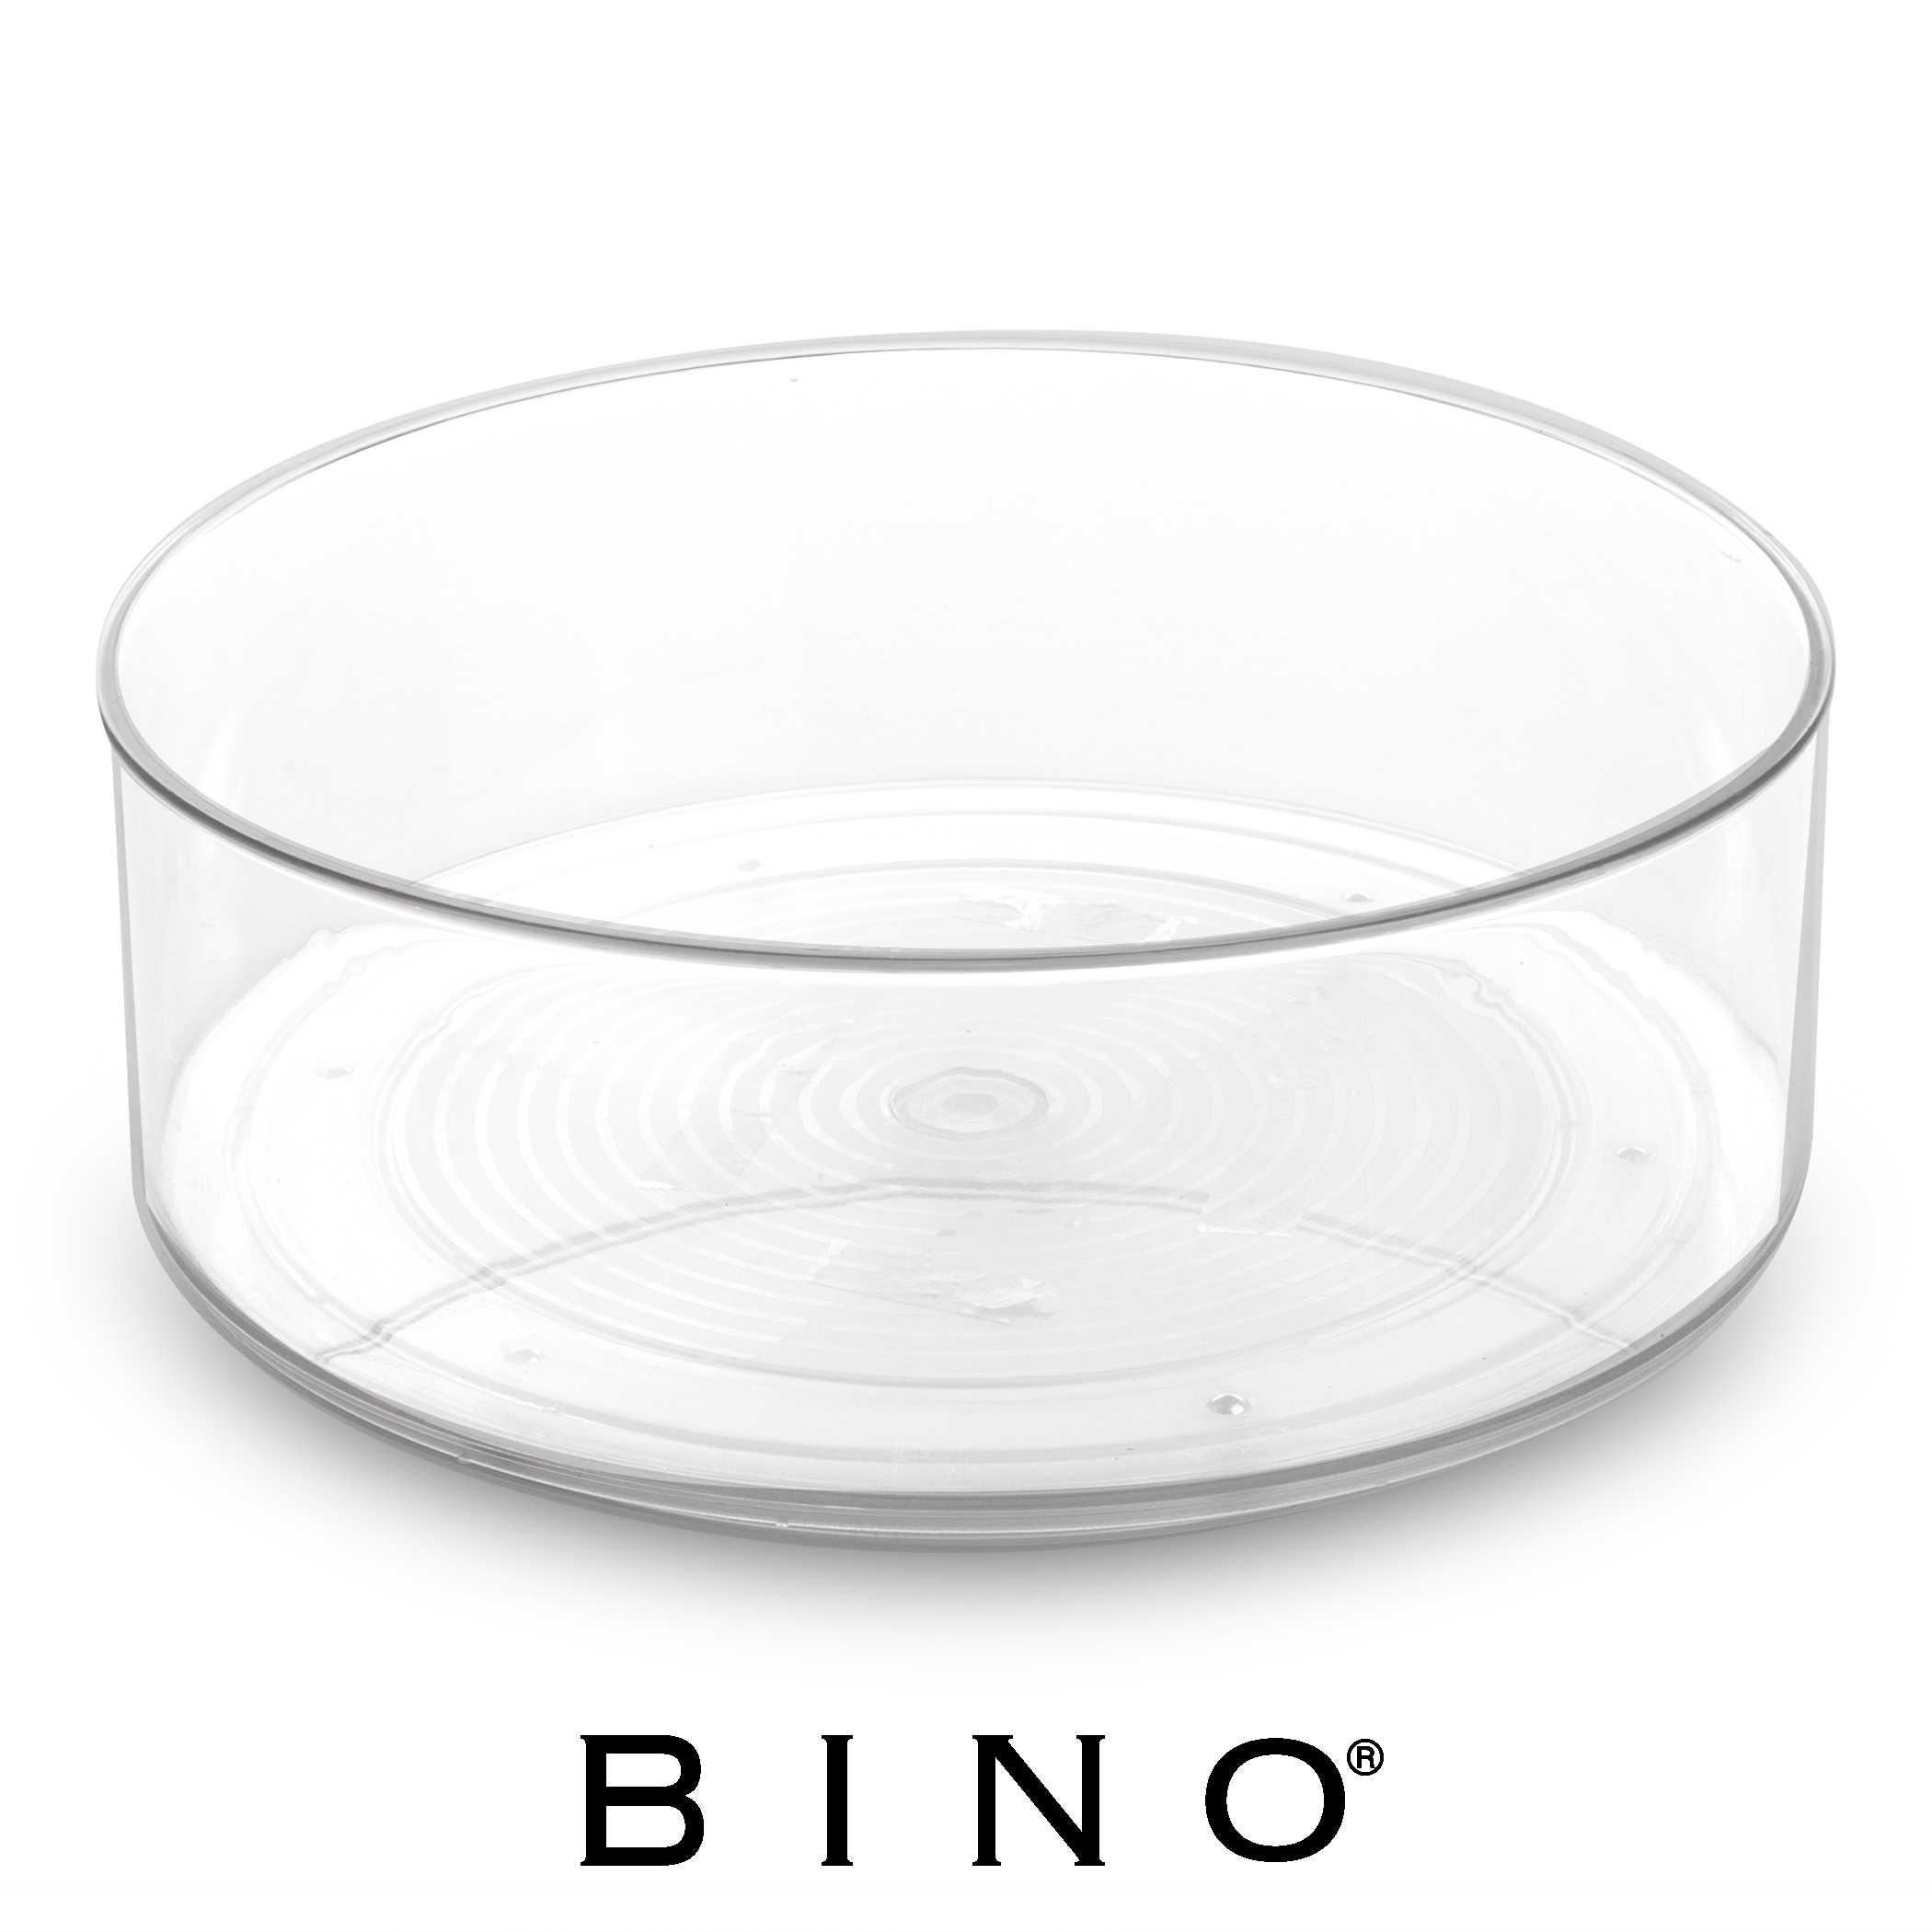 BINO Lazy Susan Turntable Spice Organizer Bin, Clear And Transparent  Plastic Rotating Tray For Kitchen